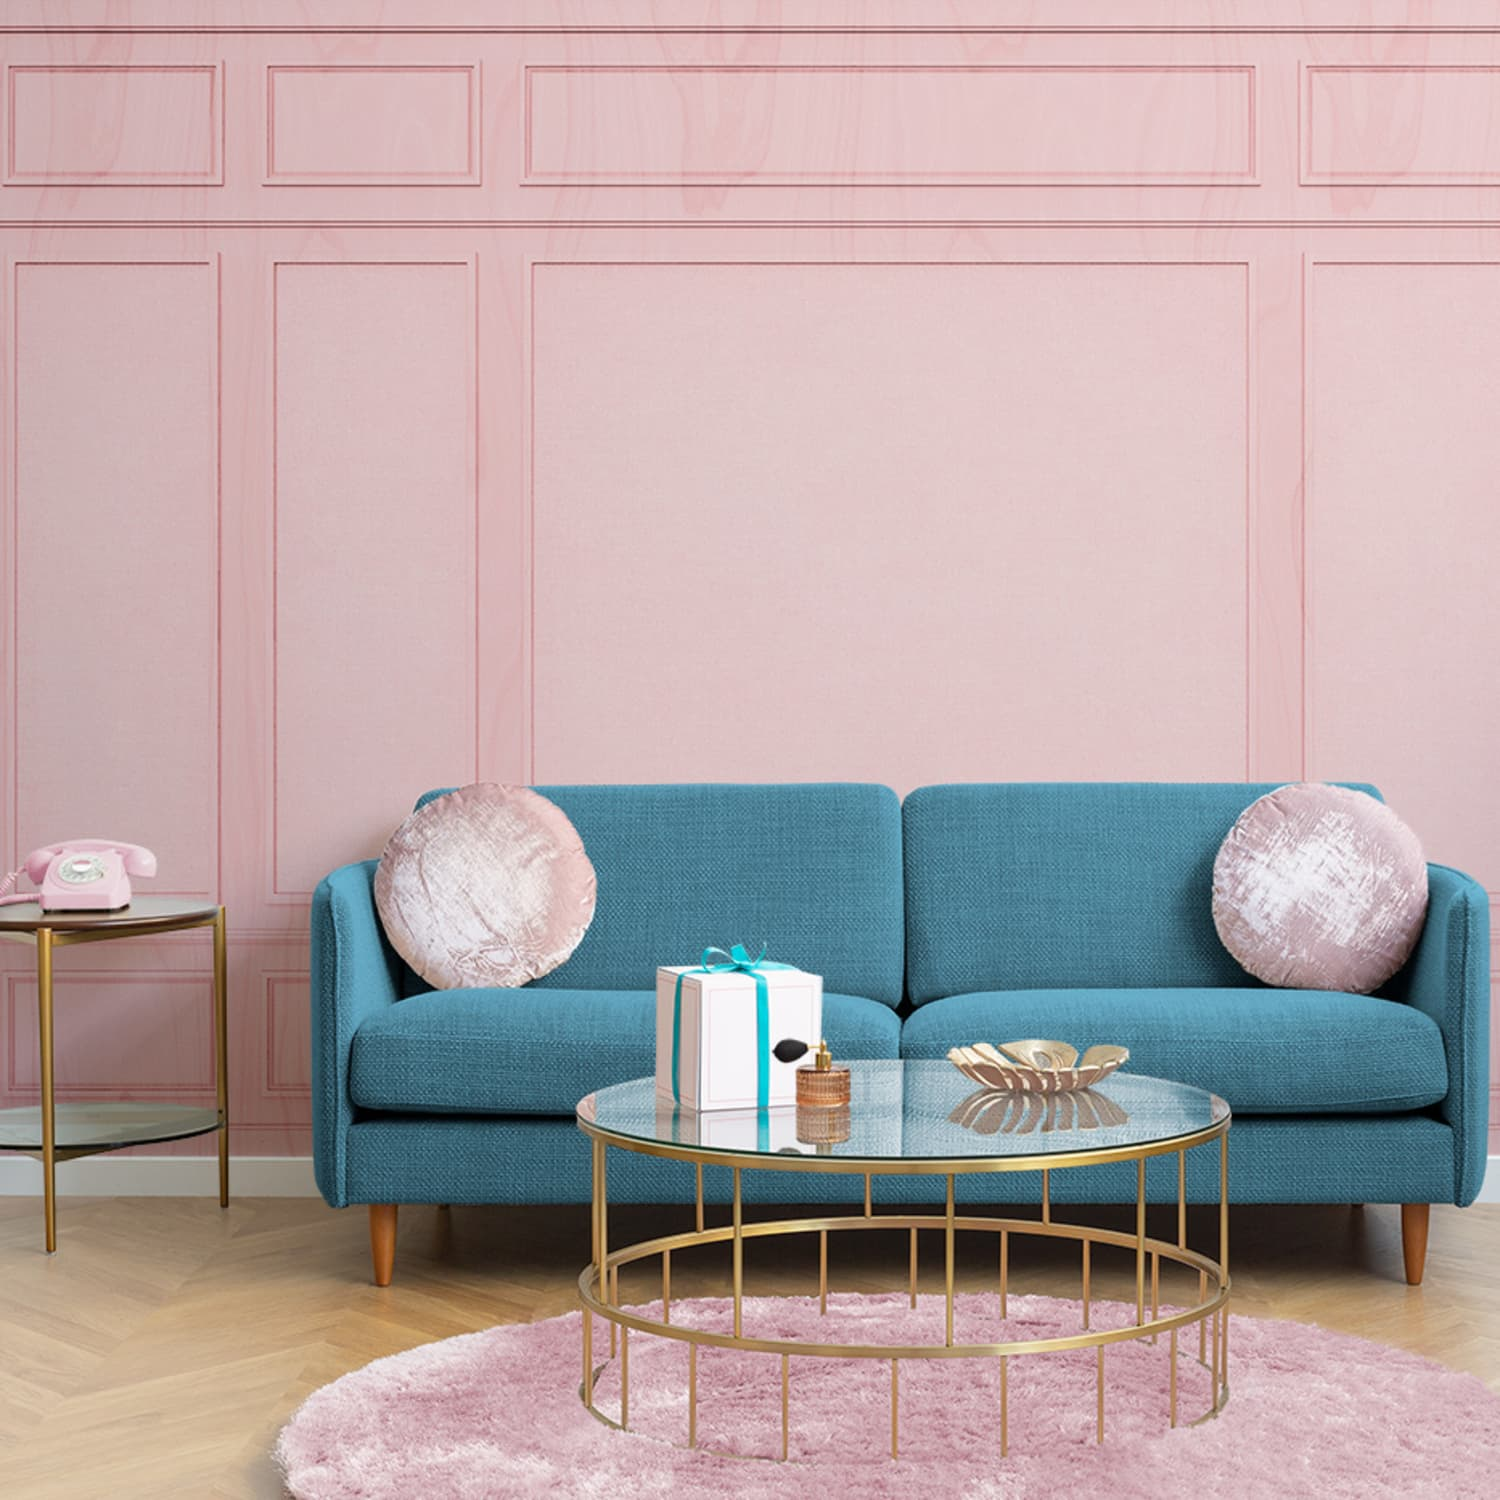 Wes Anderson Coffee Table Book.Wes Anderson Wallpaper Design Apartment Therapy